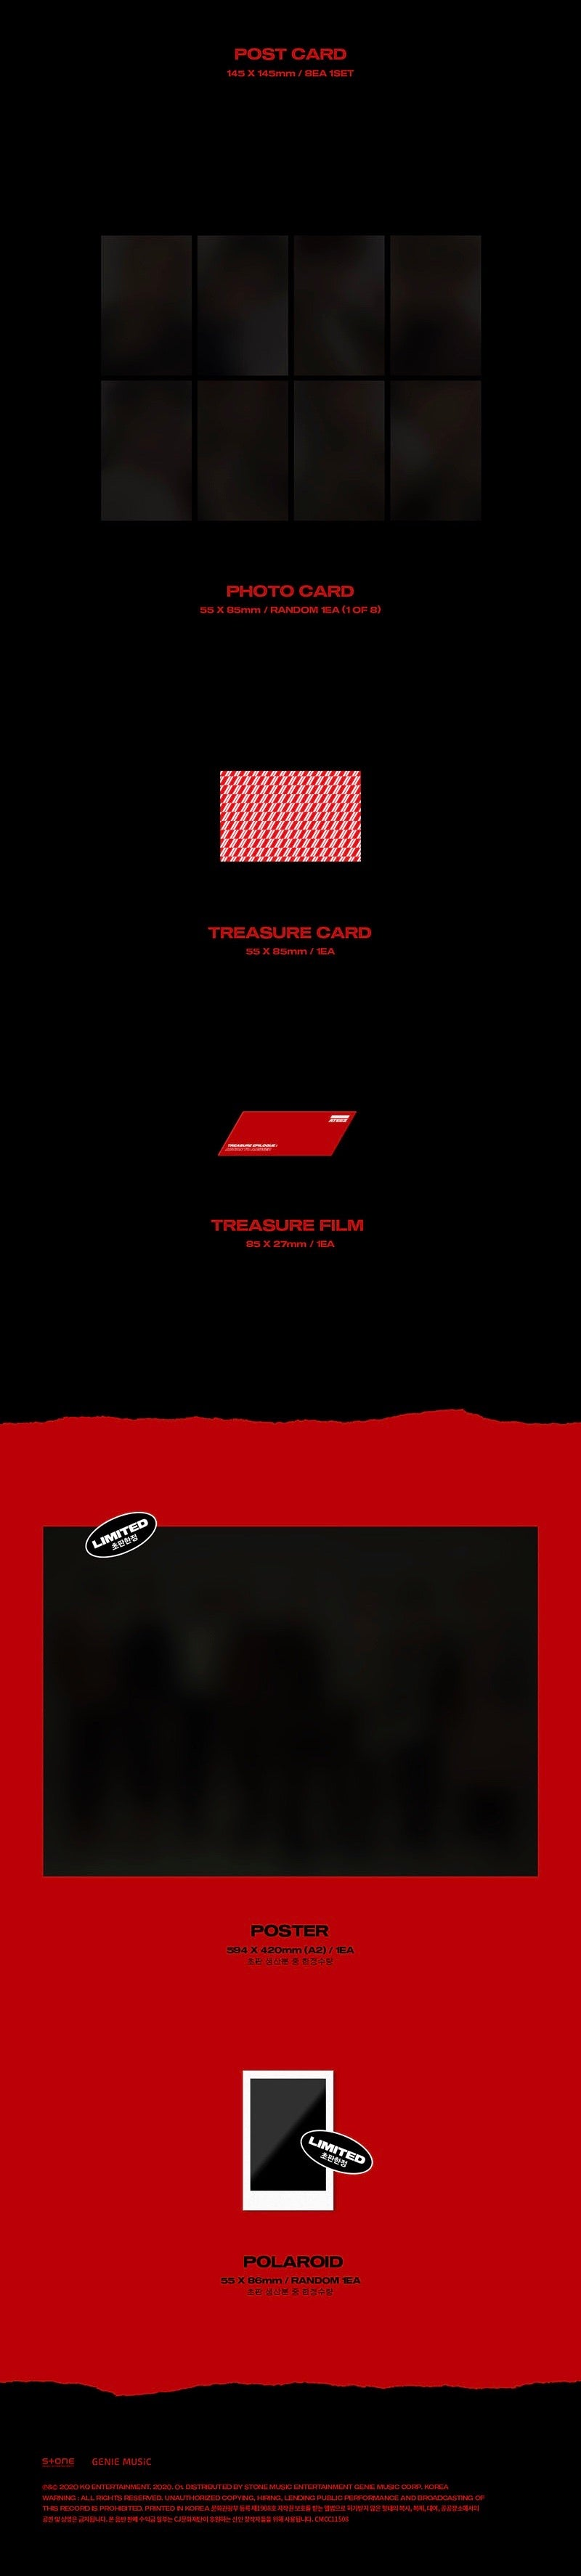 ATEEZ - Treasure Epilouge: Action to Answer